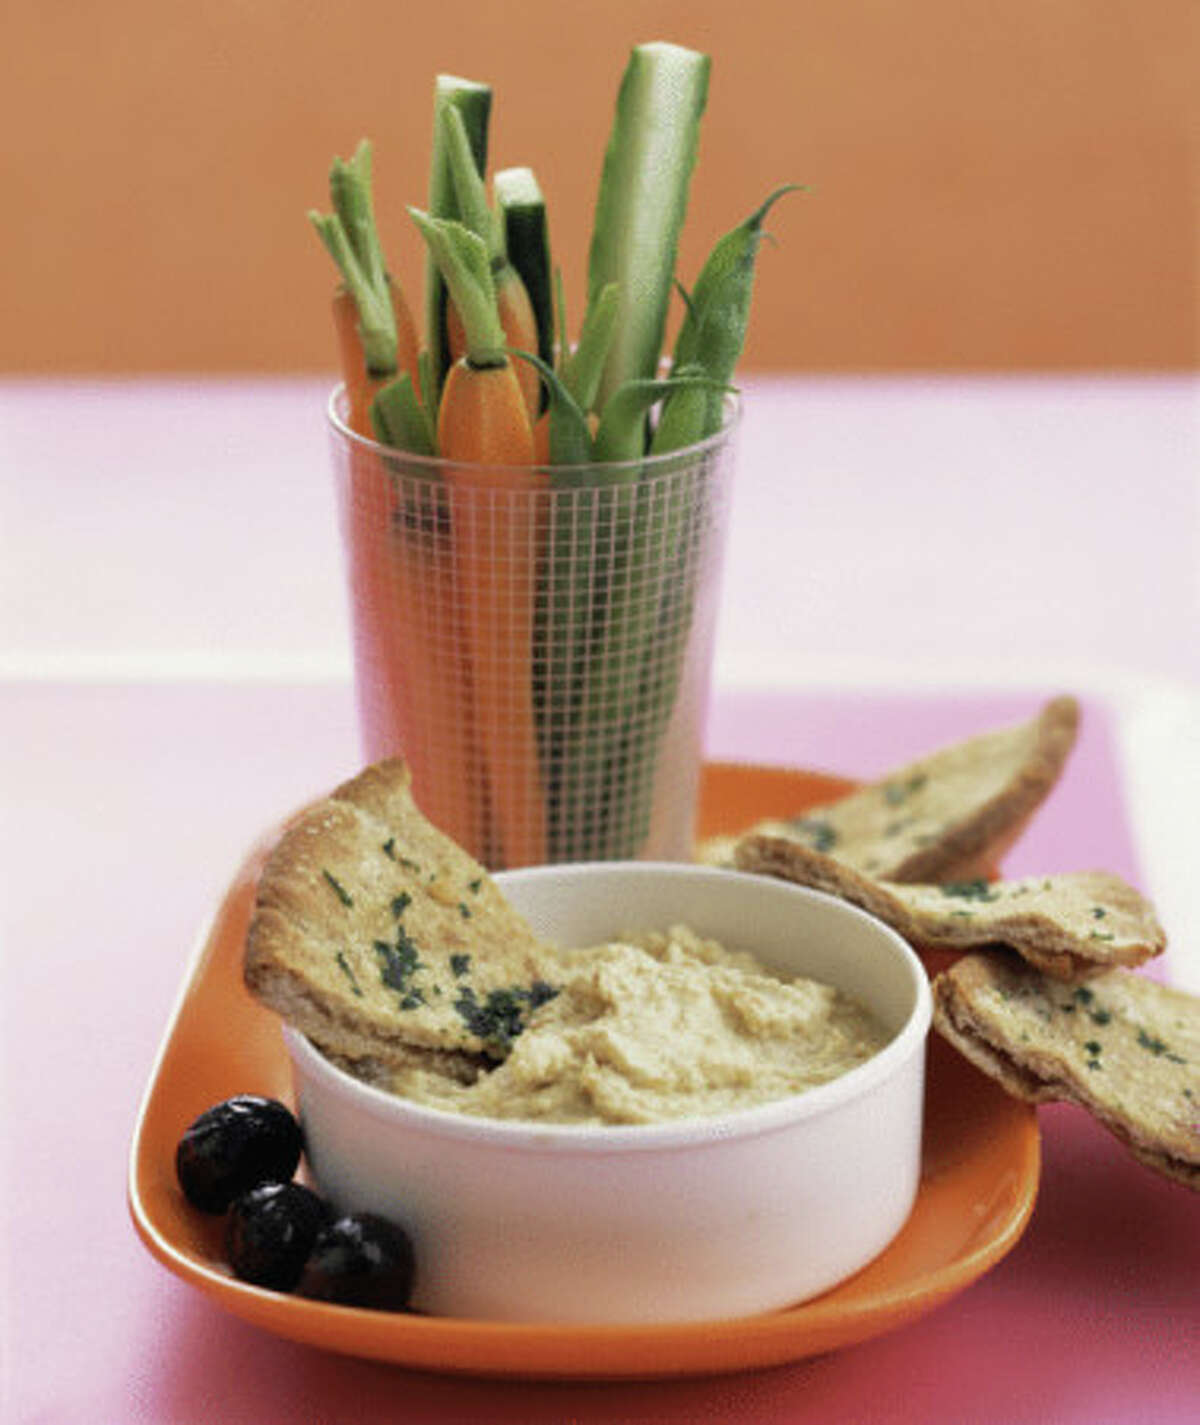 Hummus has protein, is easy to travel with and is a great snack.